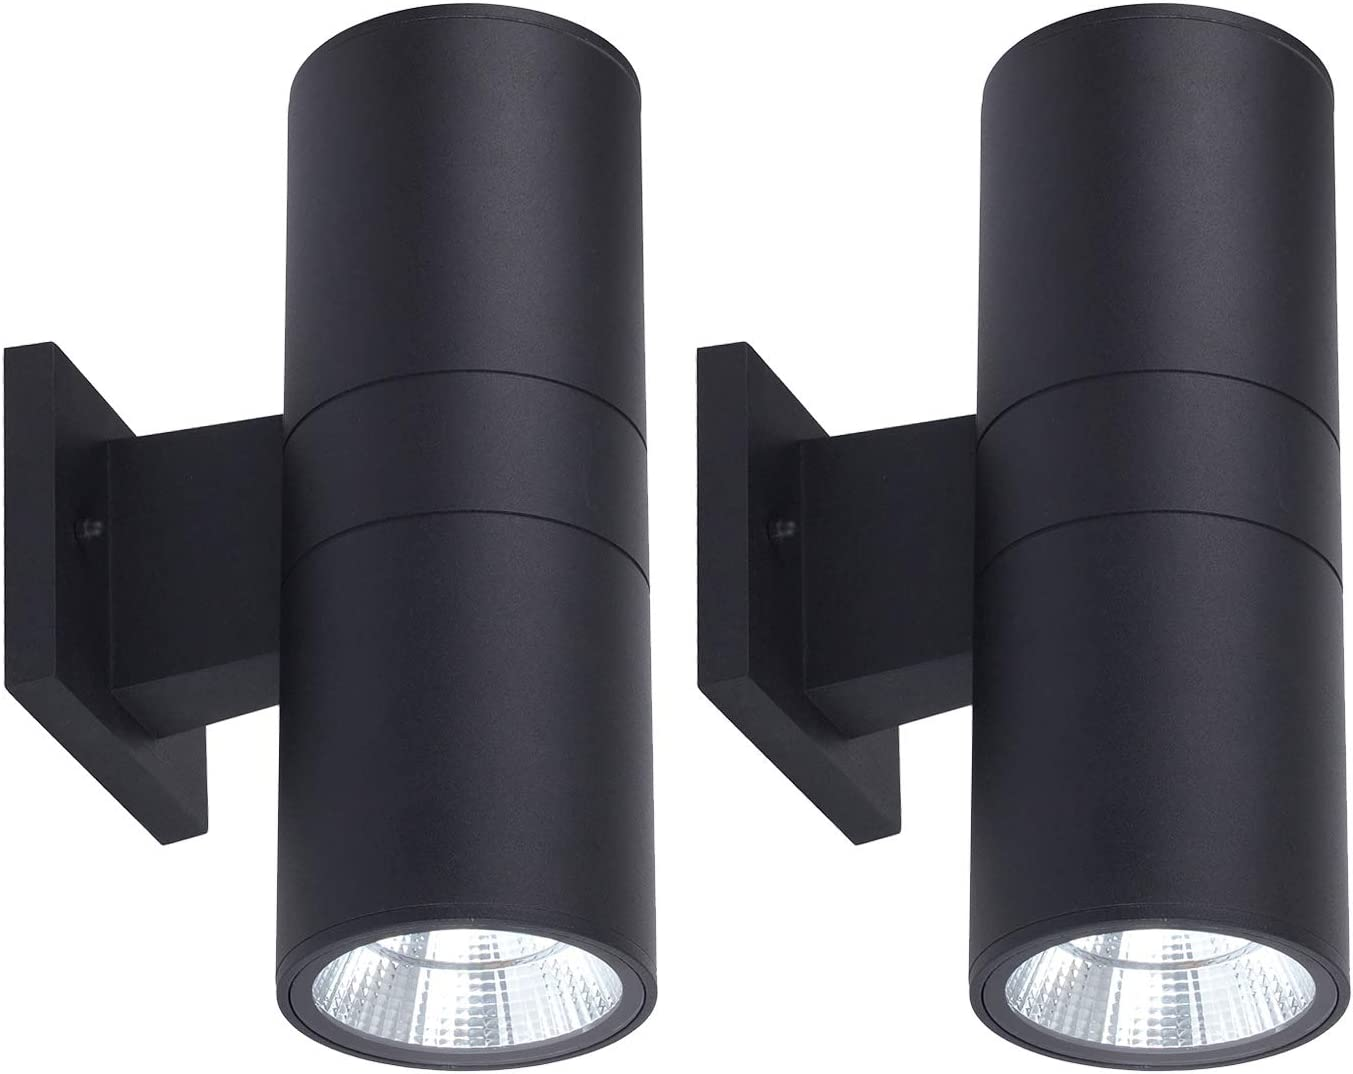 OSTWIN 18W Integrated LED Up Down Wall Light 1482Lm 120V Cylinder Outdoor Porch Lights 5000K Daylight, Waterproof 2-Direction Modern Light Fixture for Door Way, Patio Light, 120W Equiv,2 Pack